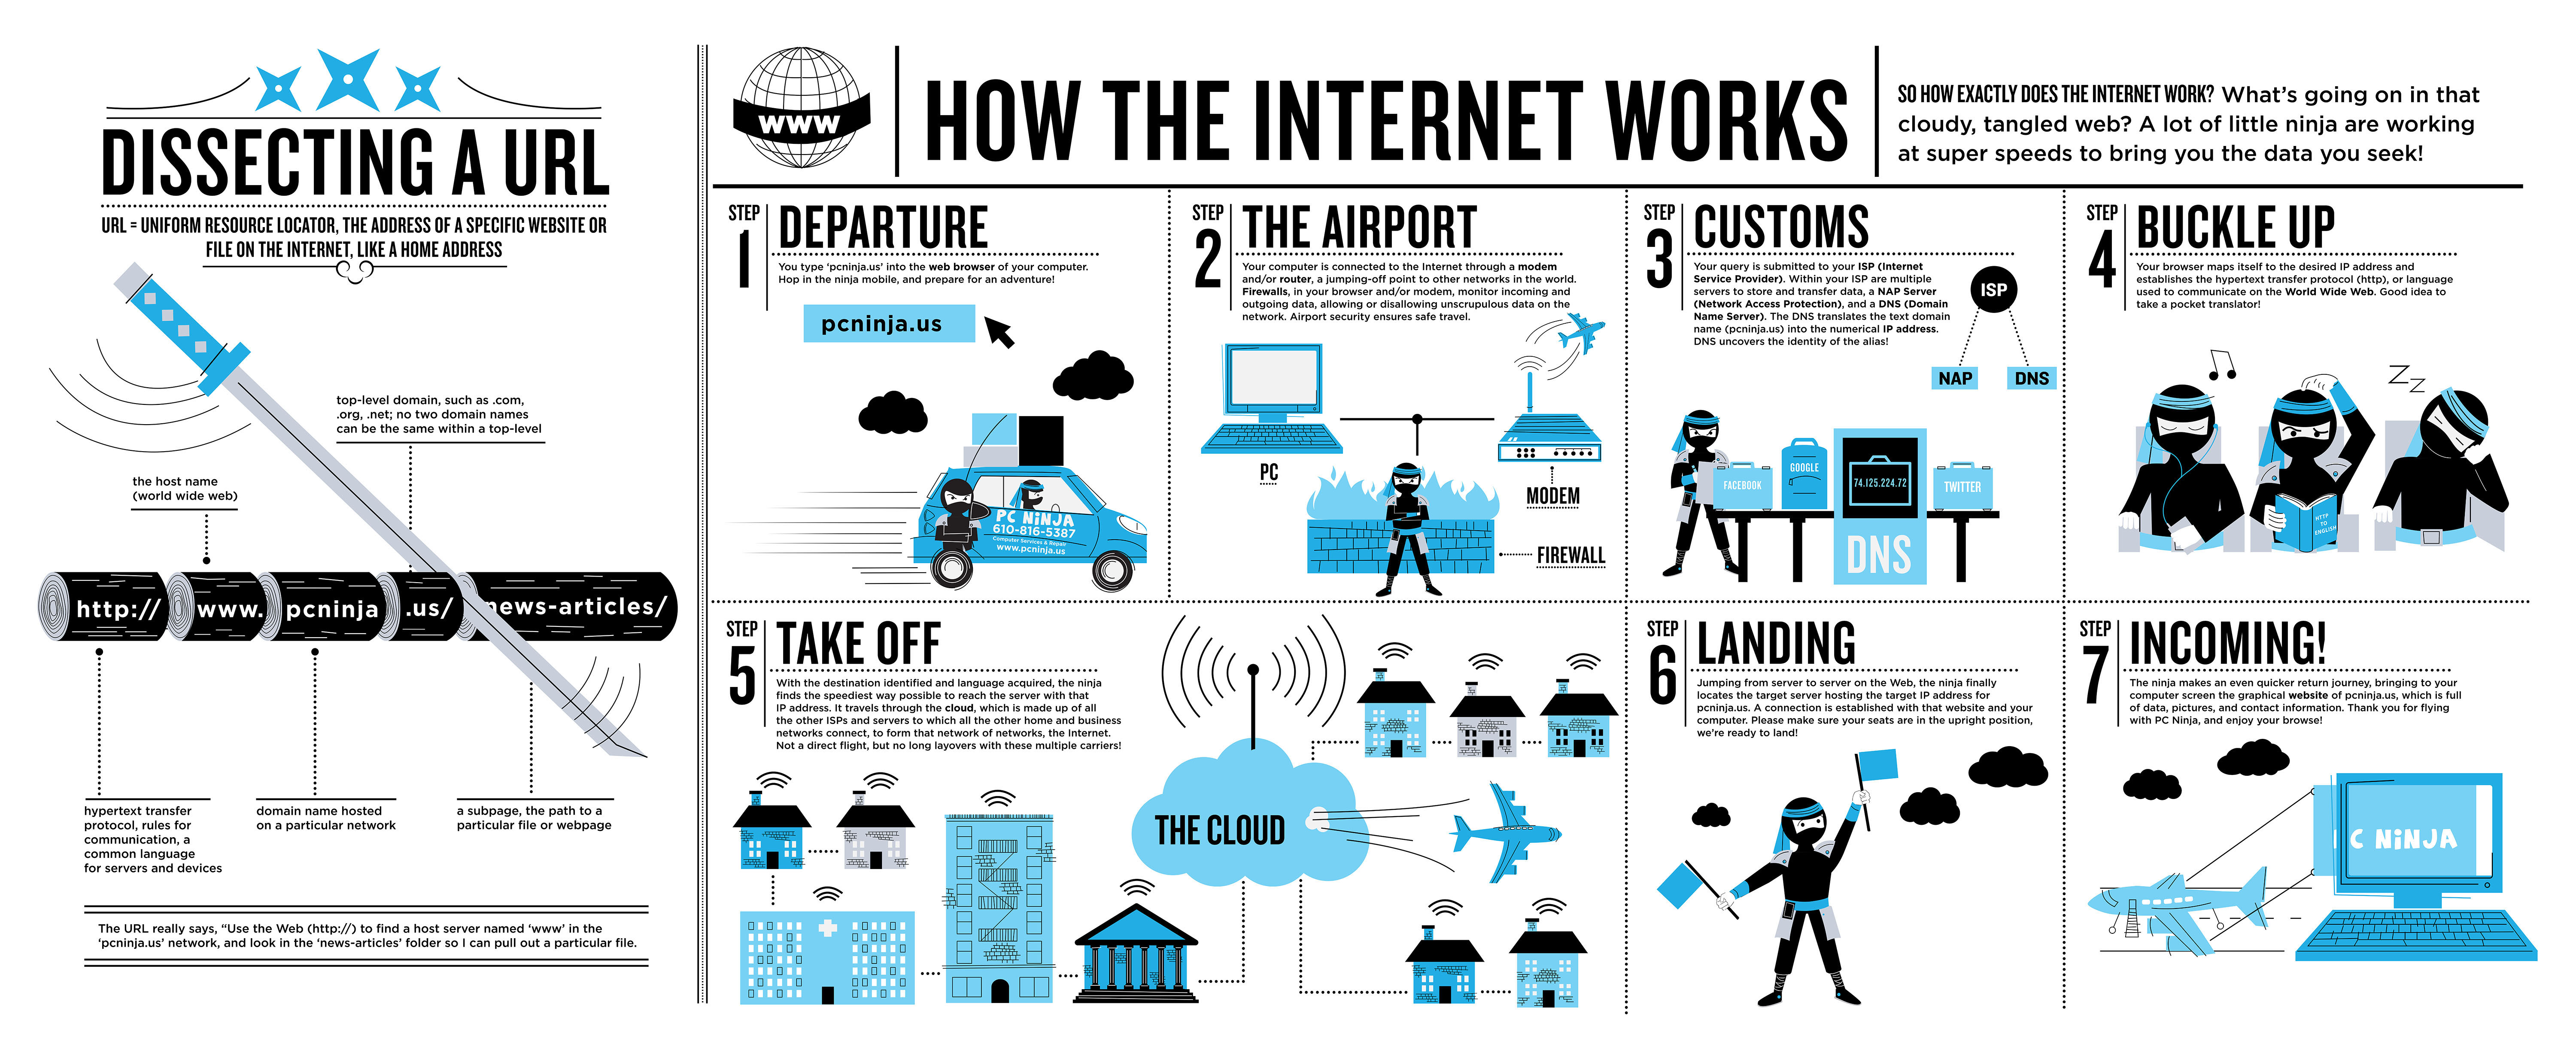 How the Internet Works | Information Systems in Organizations